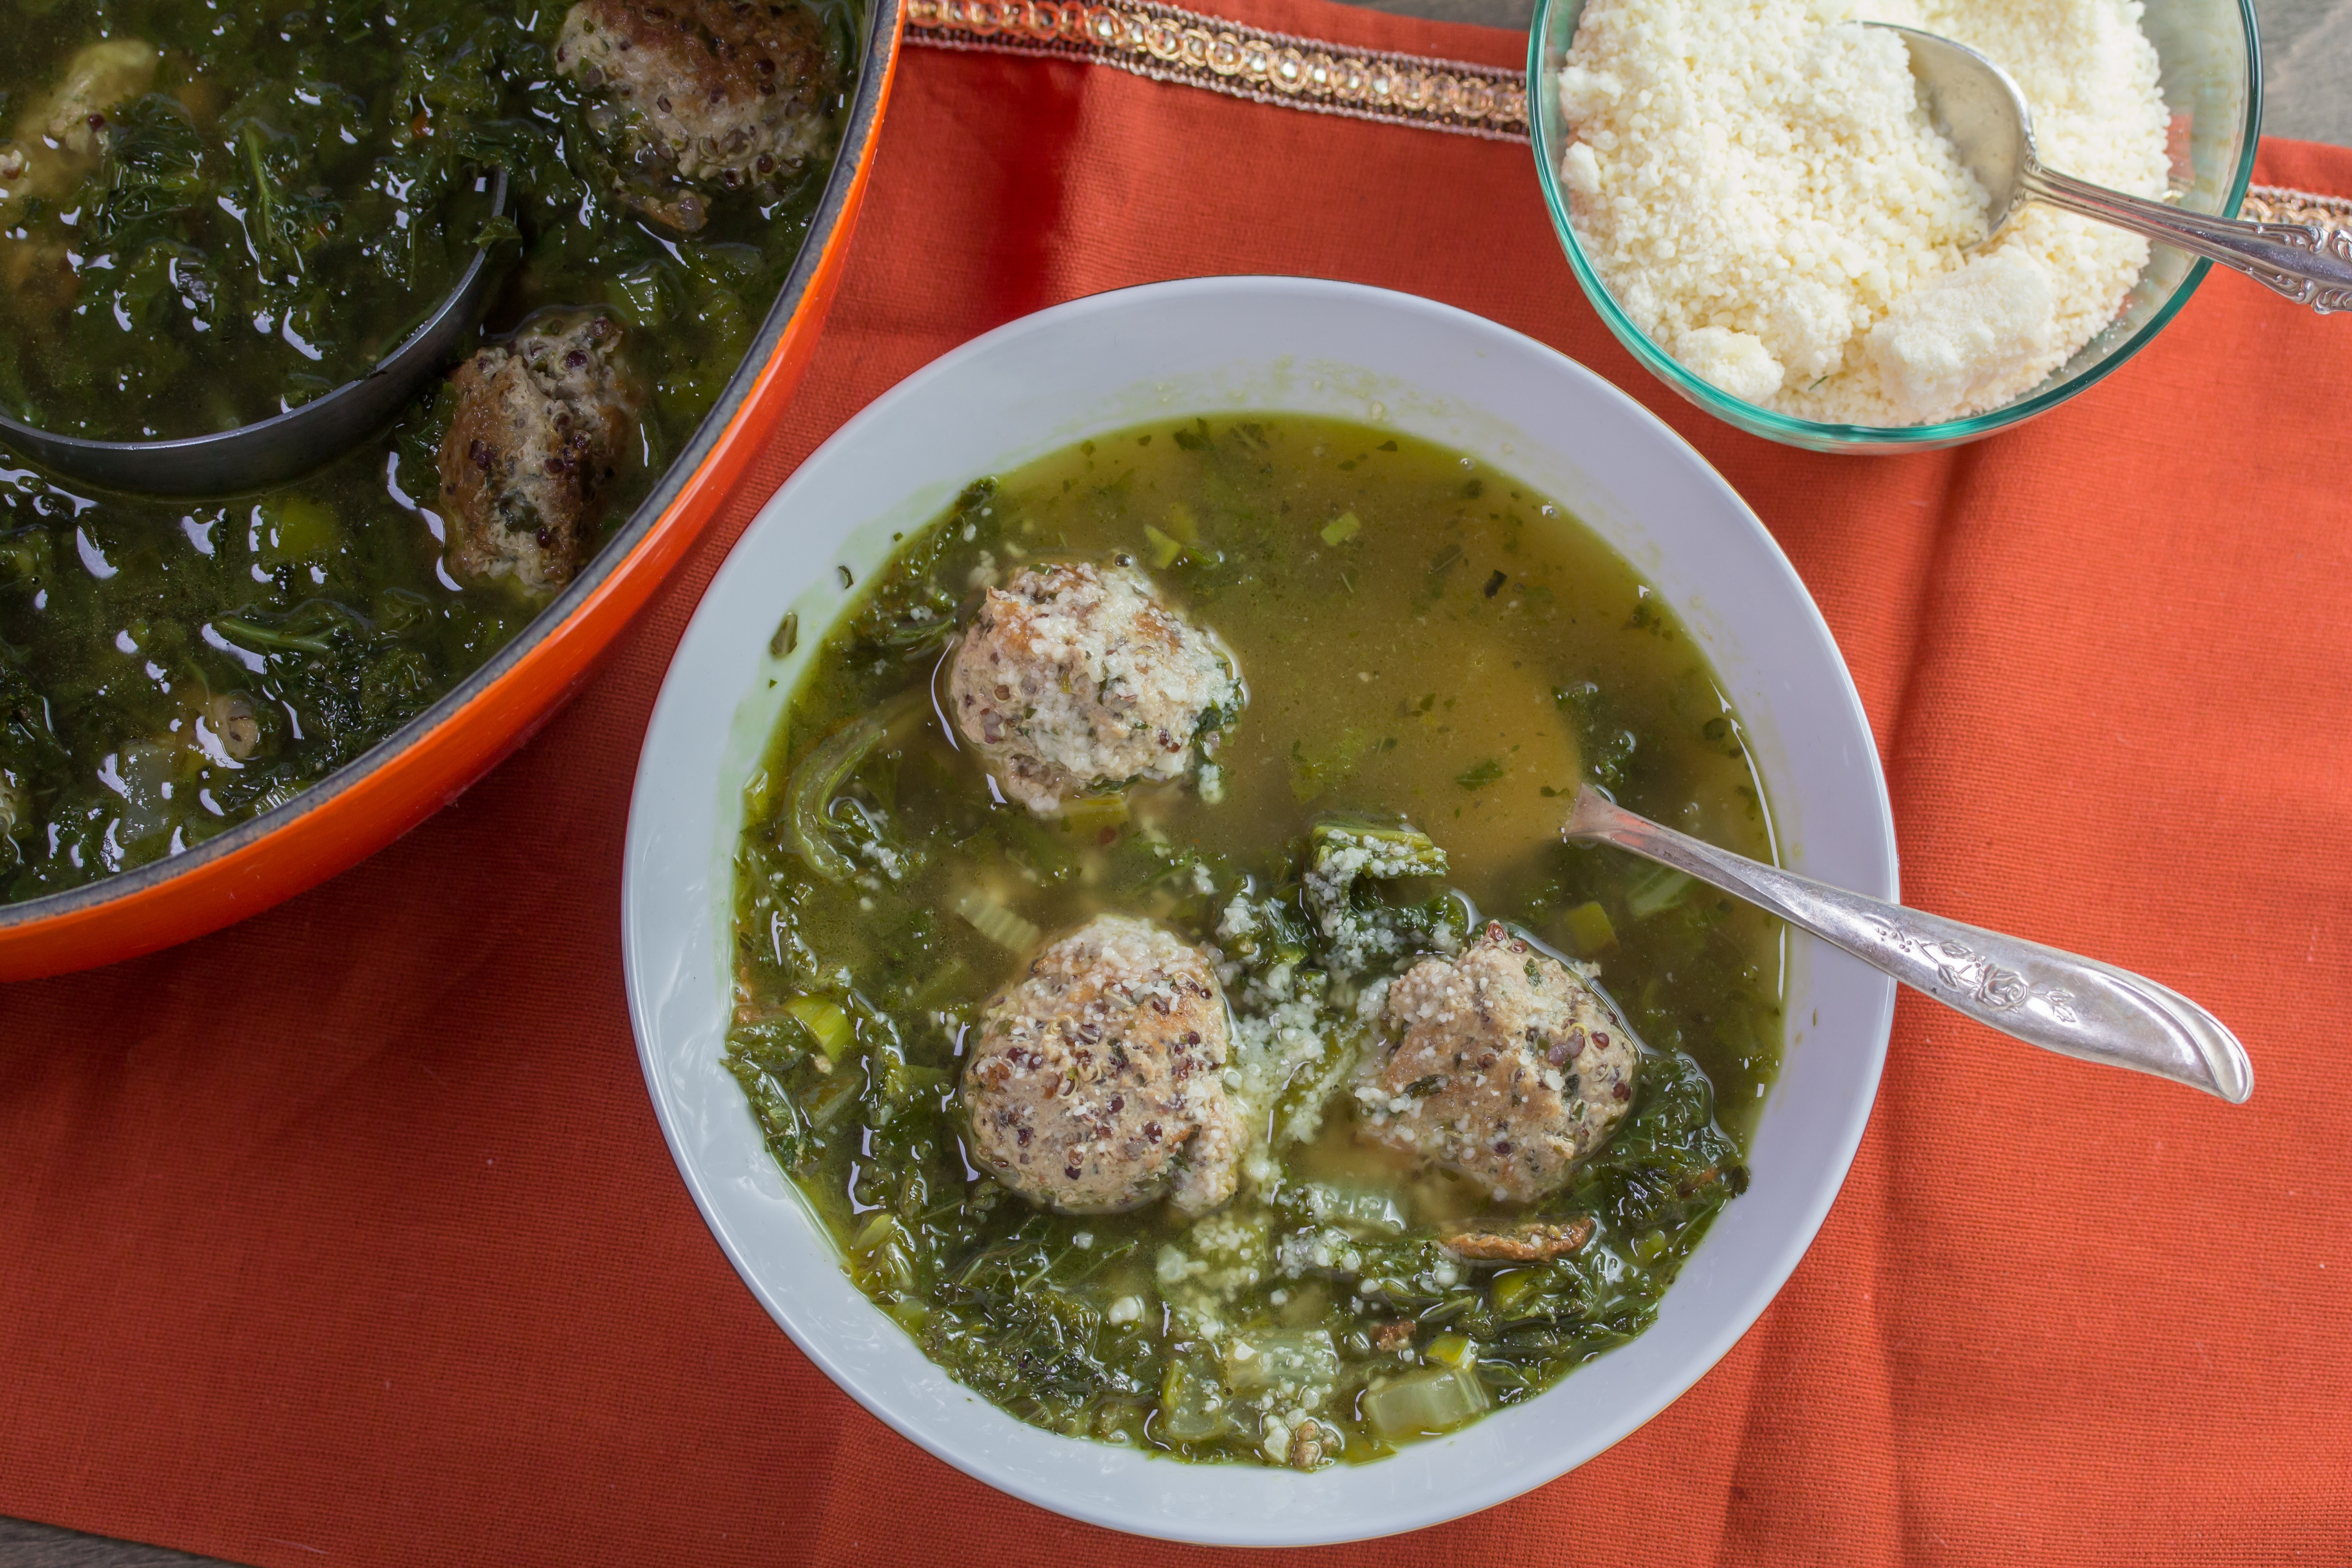 Ground turkey and cooked quinoa make for tasty, hardy meatballs in this brothy soup. You could also make this with chicken stock and ground chicken.